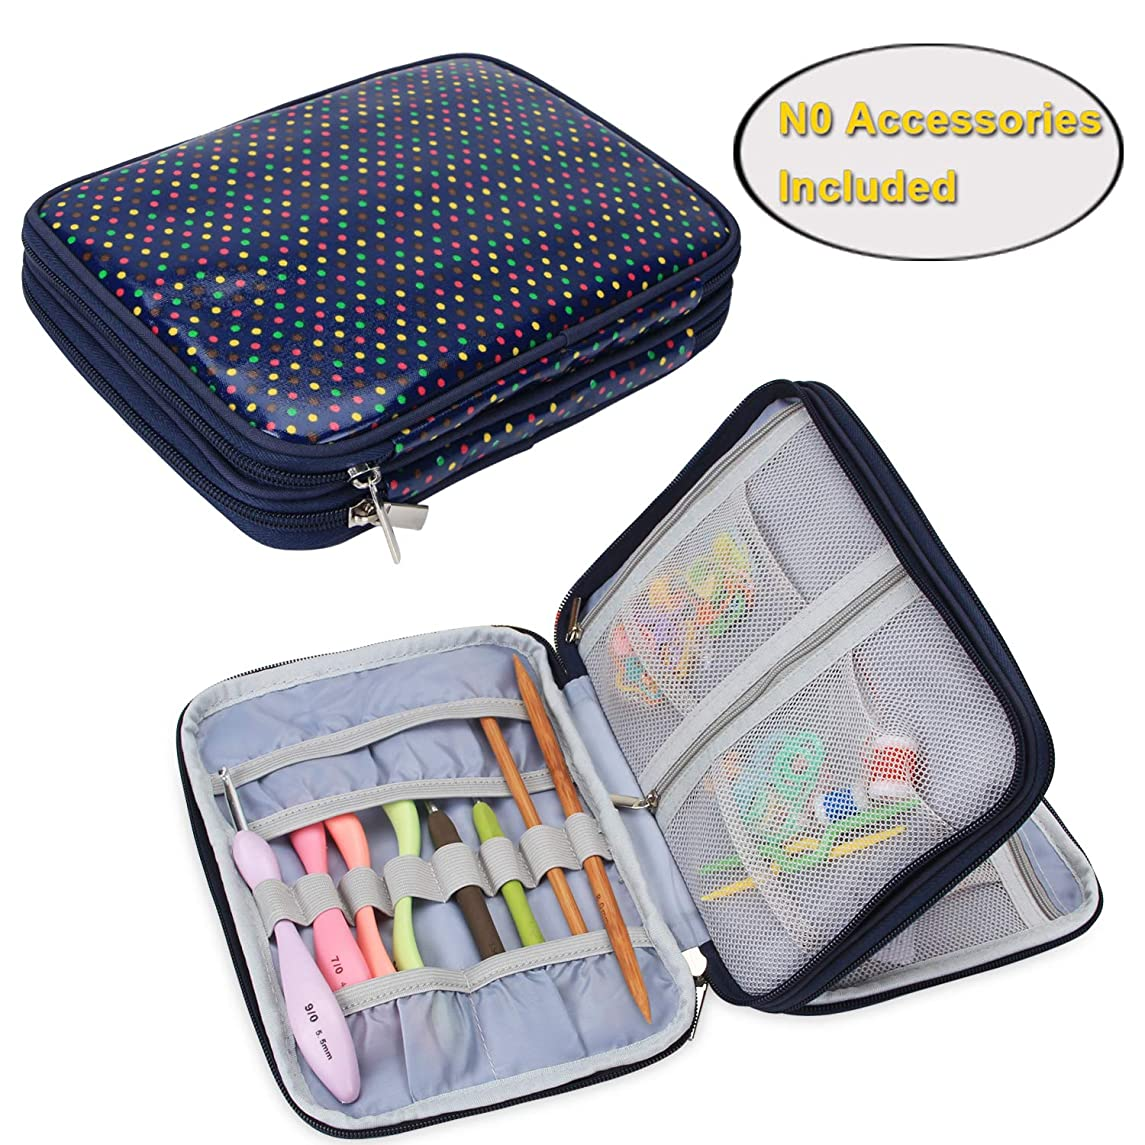 Teamoy Crochet Hook Case, Travel Storage Bag for Swing Crochet Hooks, Lighted Hooks, Needles(Up to 8'') and Accessories, Colorful Dots(No Accessories Included)